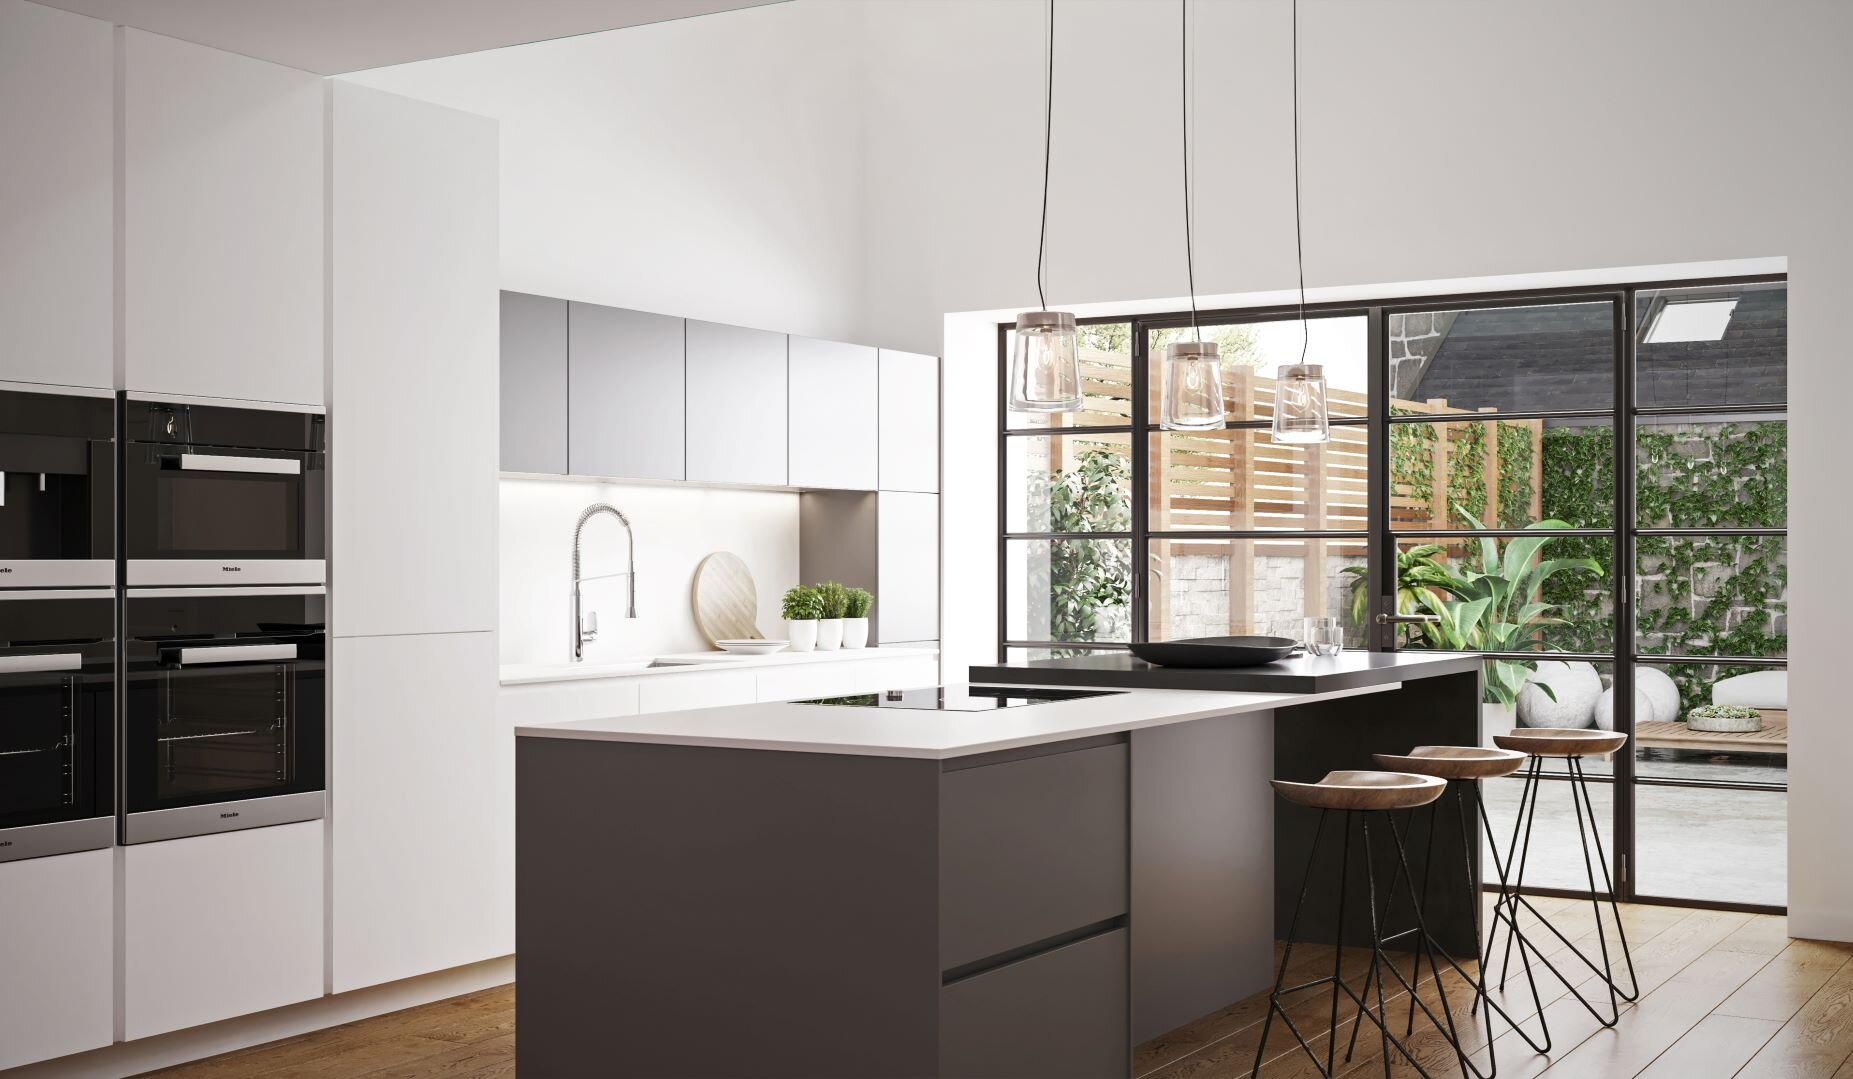 Kitchens - Your Dream Kitchen Is Just a Step Away